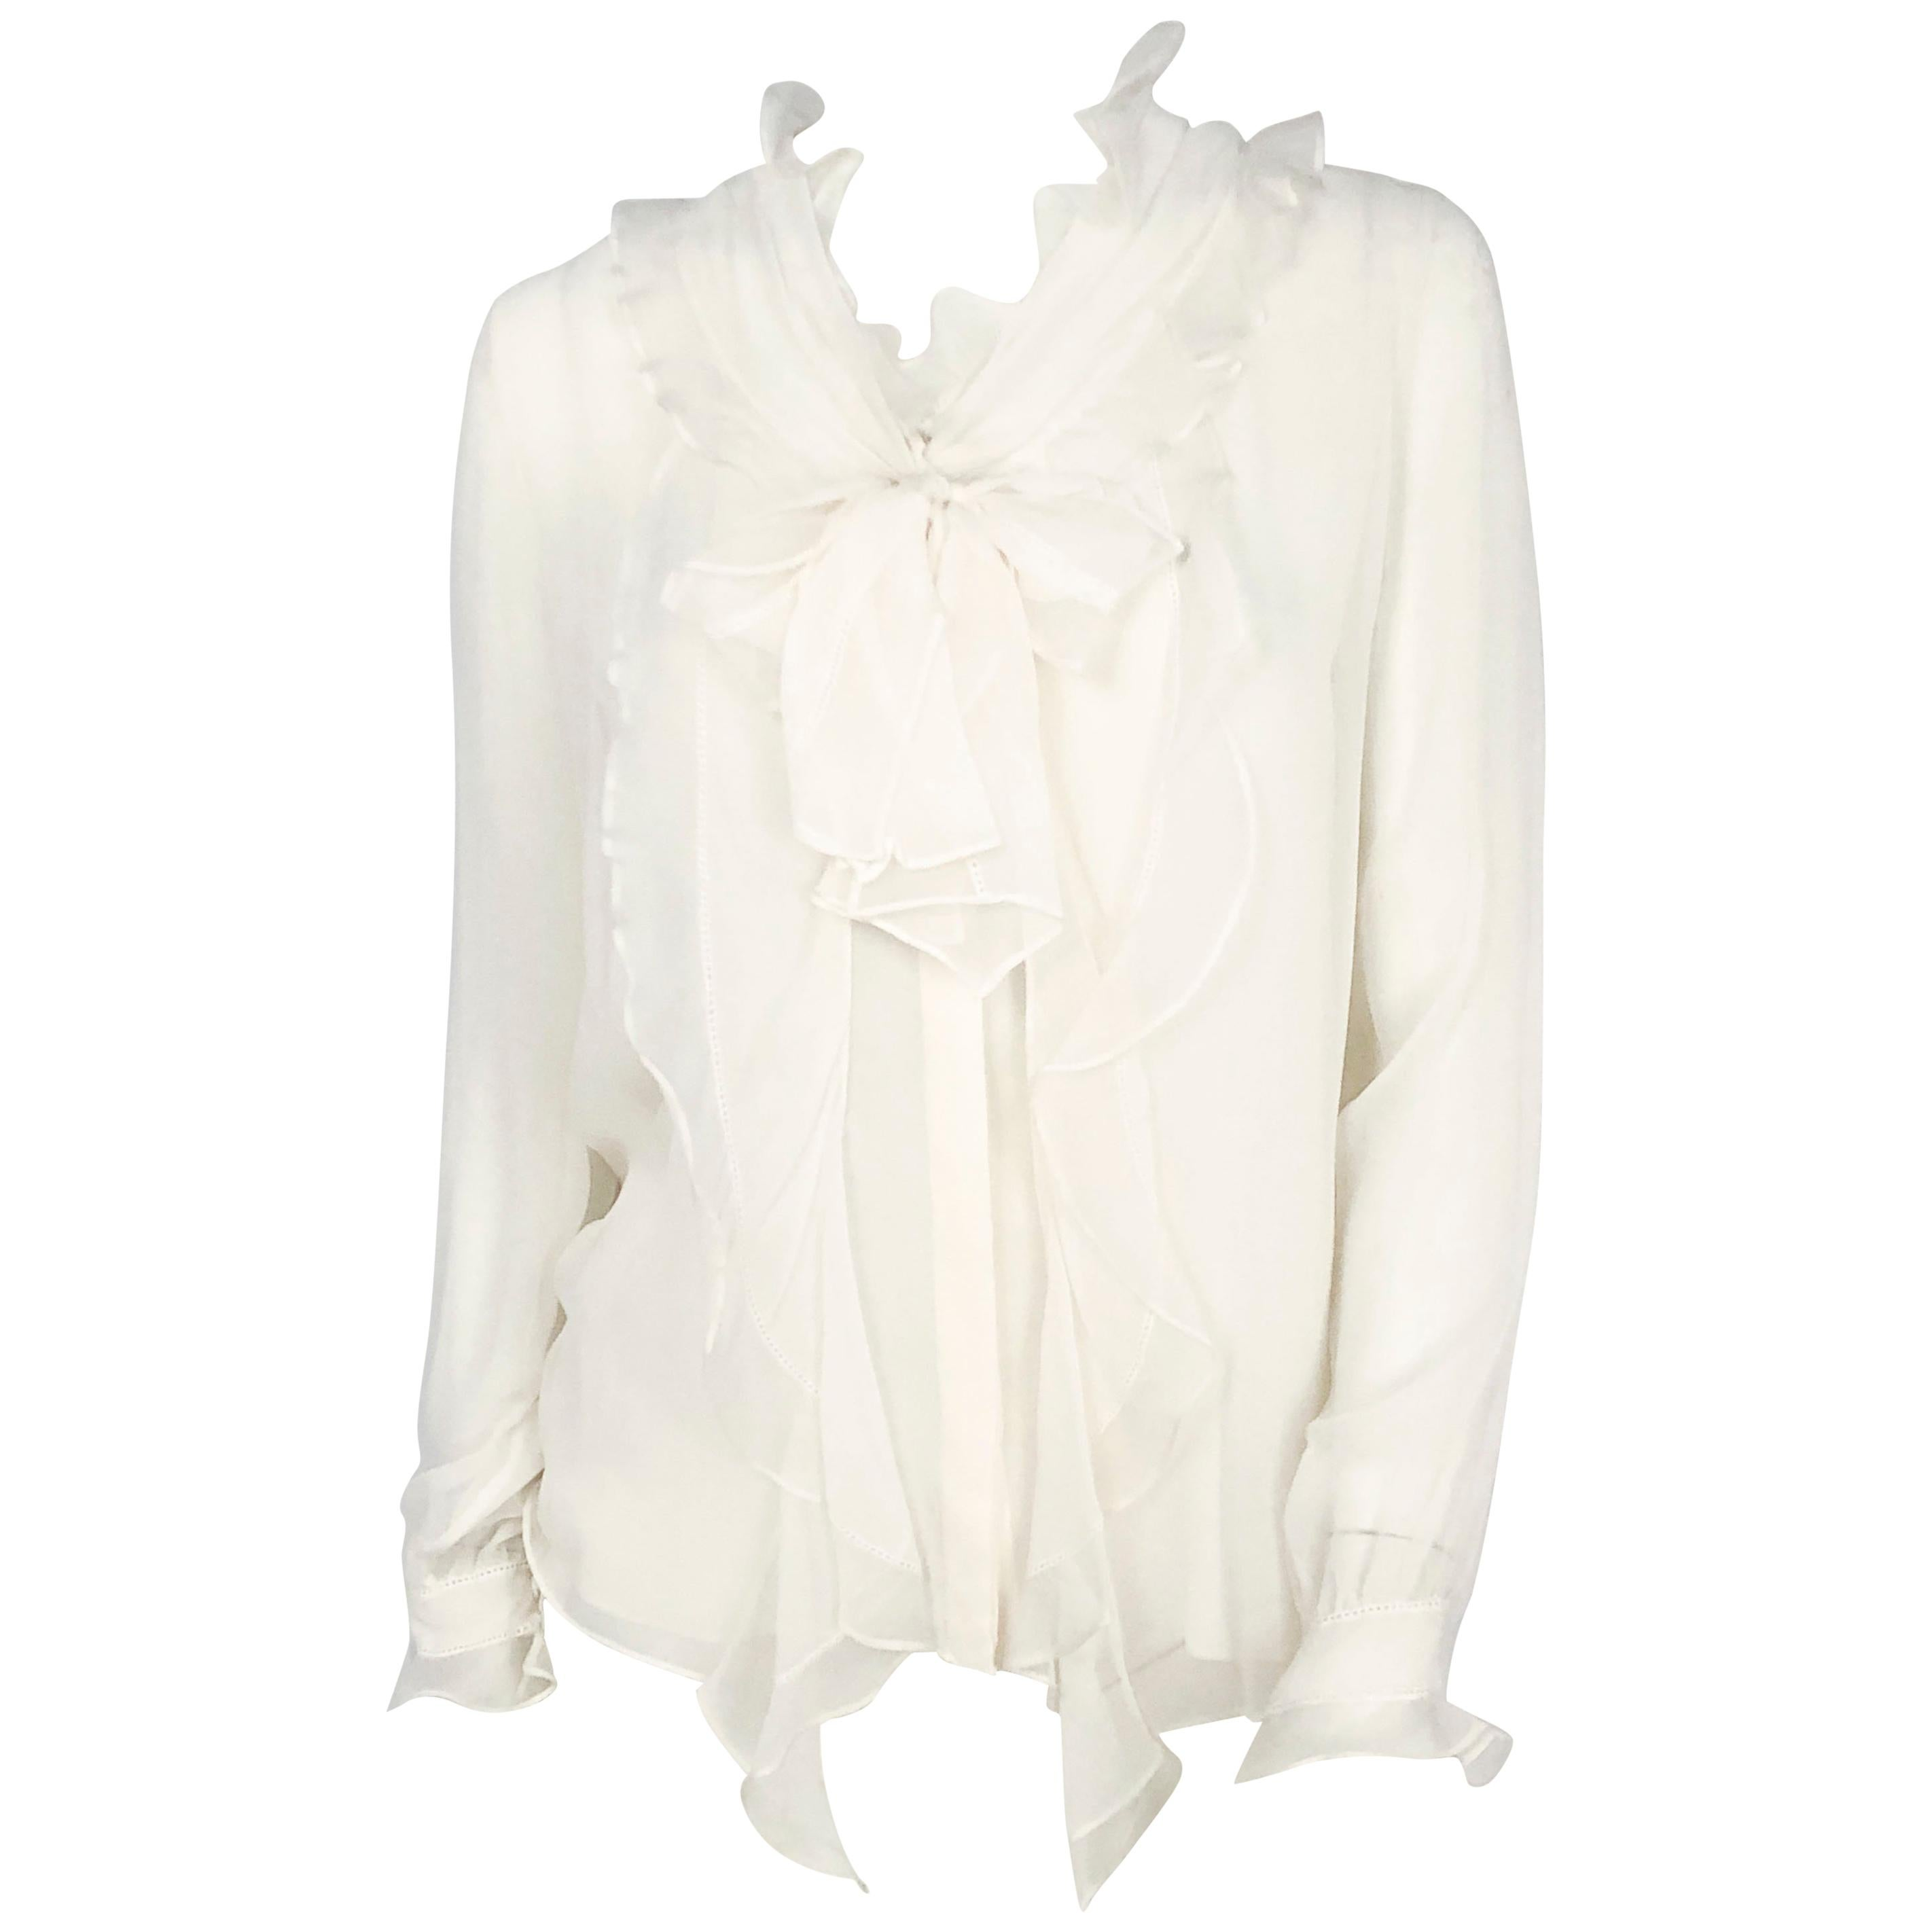 e20d2c289297af Ruffled White Blouses - 56 For Sale on 1stdibs